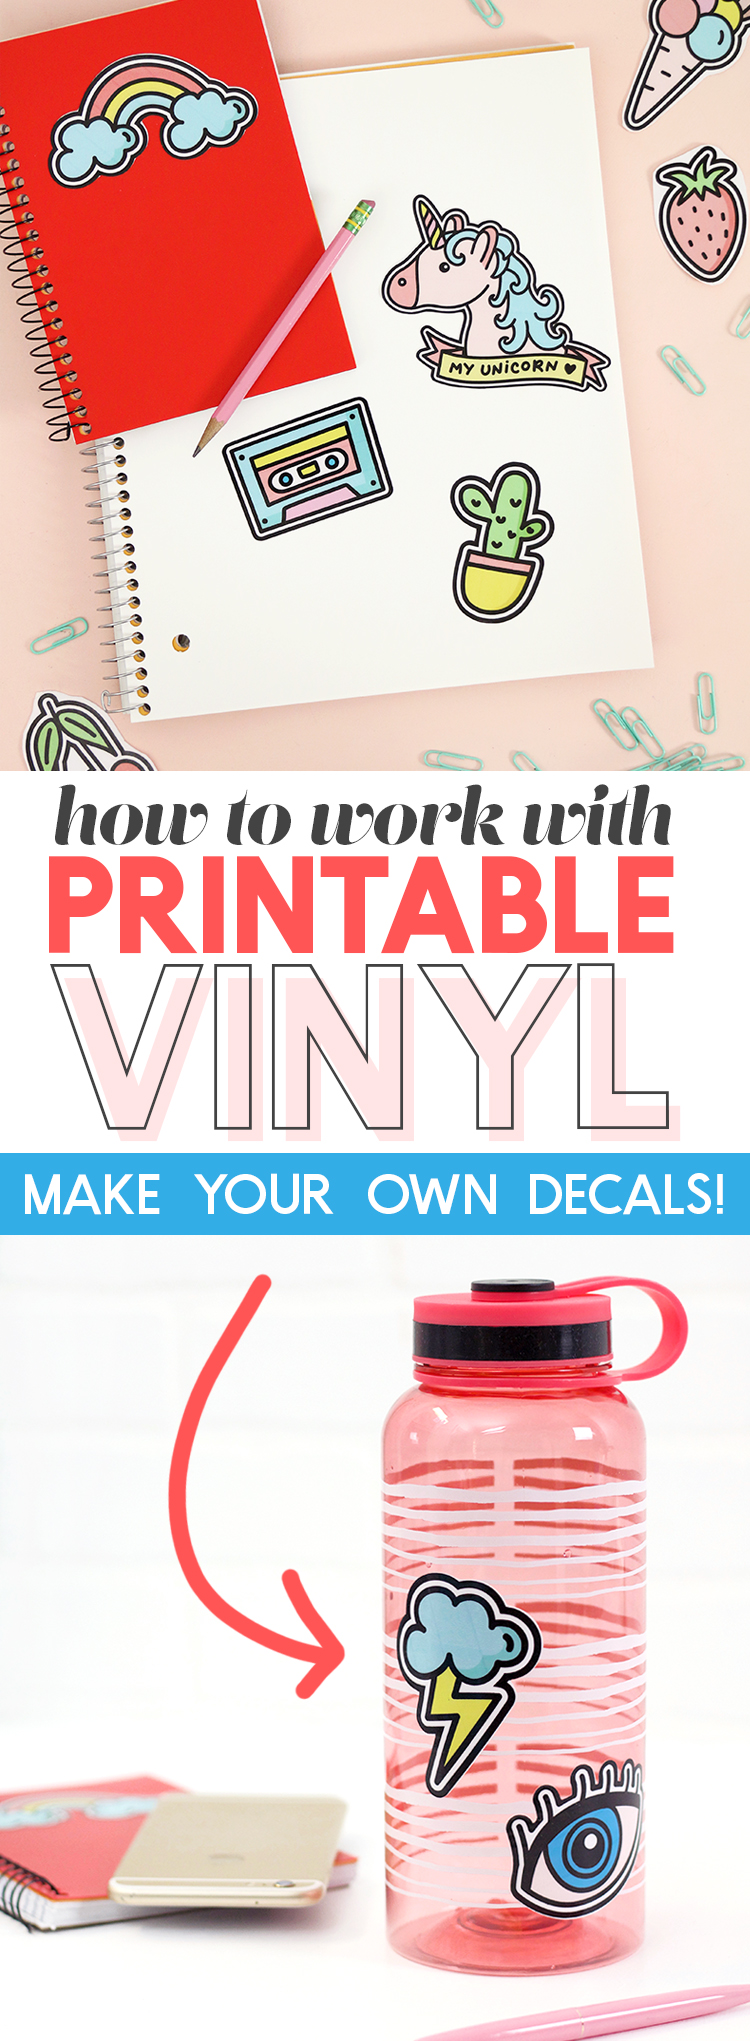 Printable Vinyl Diy Stickers